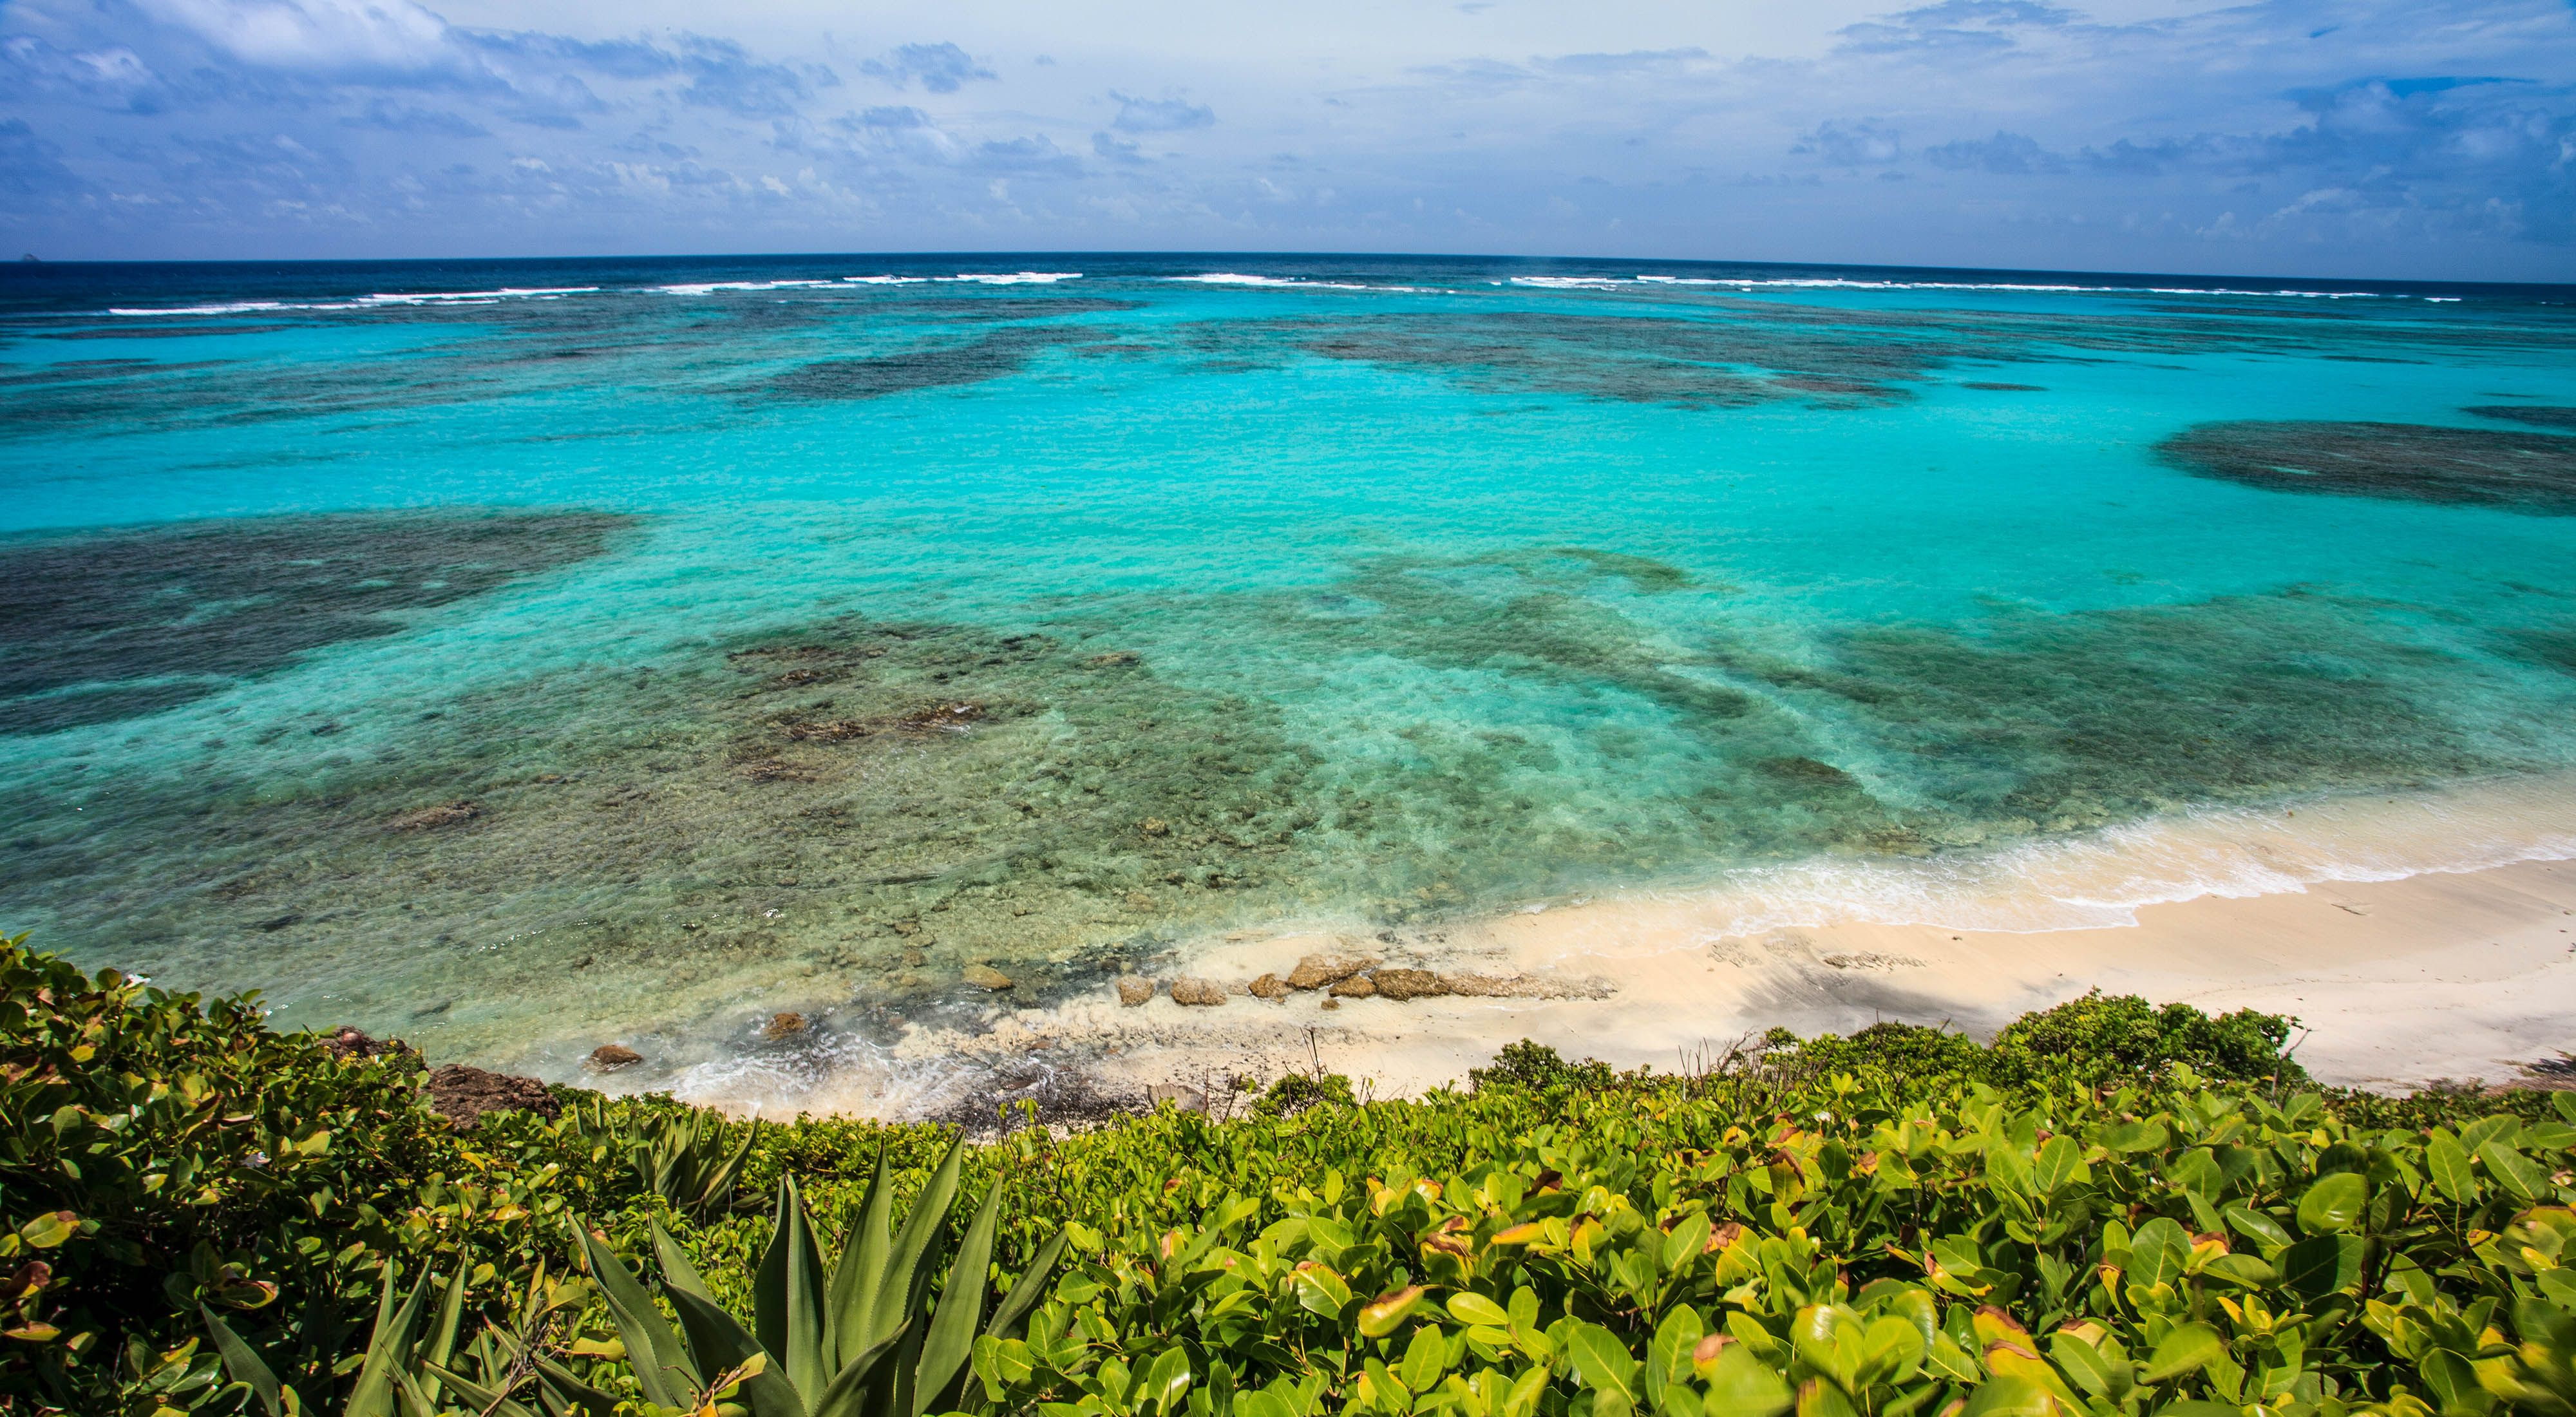 Coast in St. Vincent & the Grenadines fringed with shallow coral reefs that help protect the beaches.